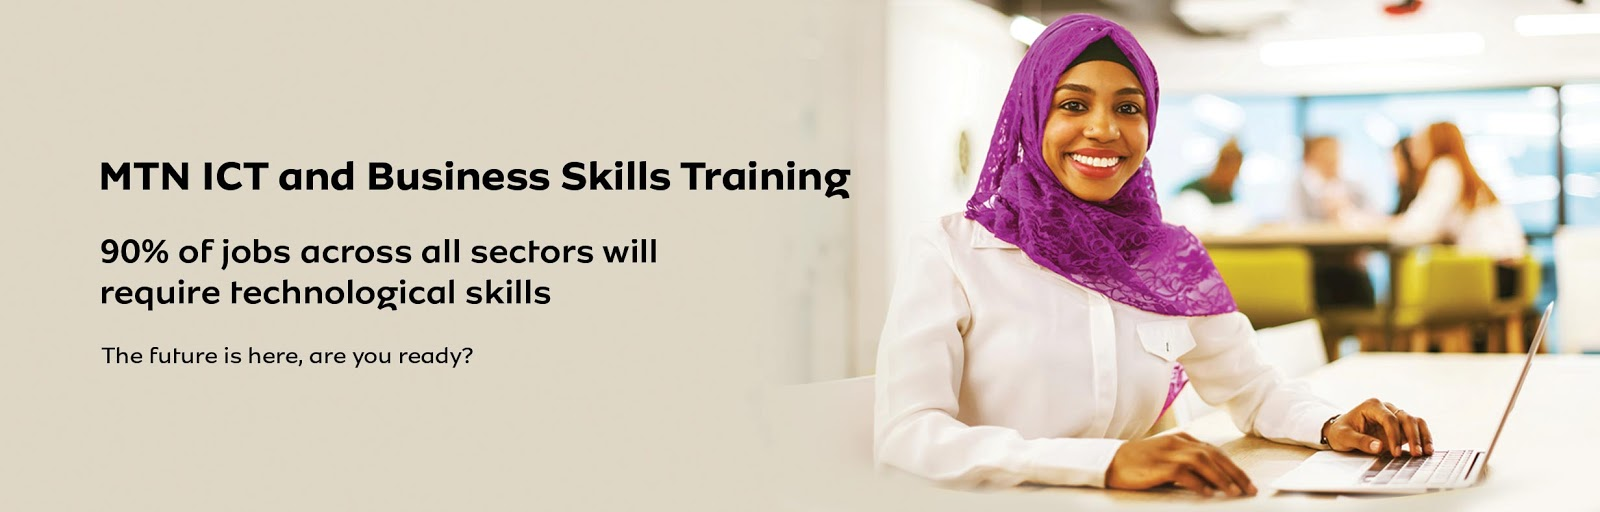 Hurry up and register for MTN ICT and Business Skills Training